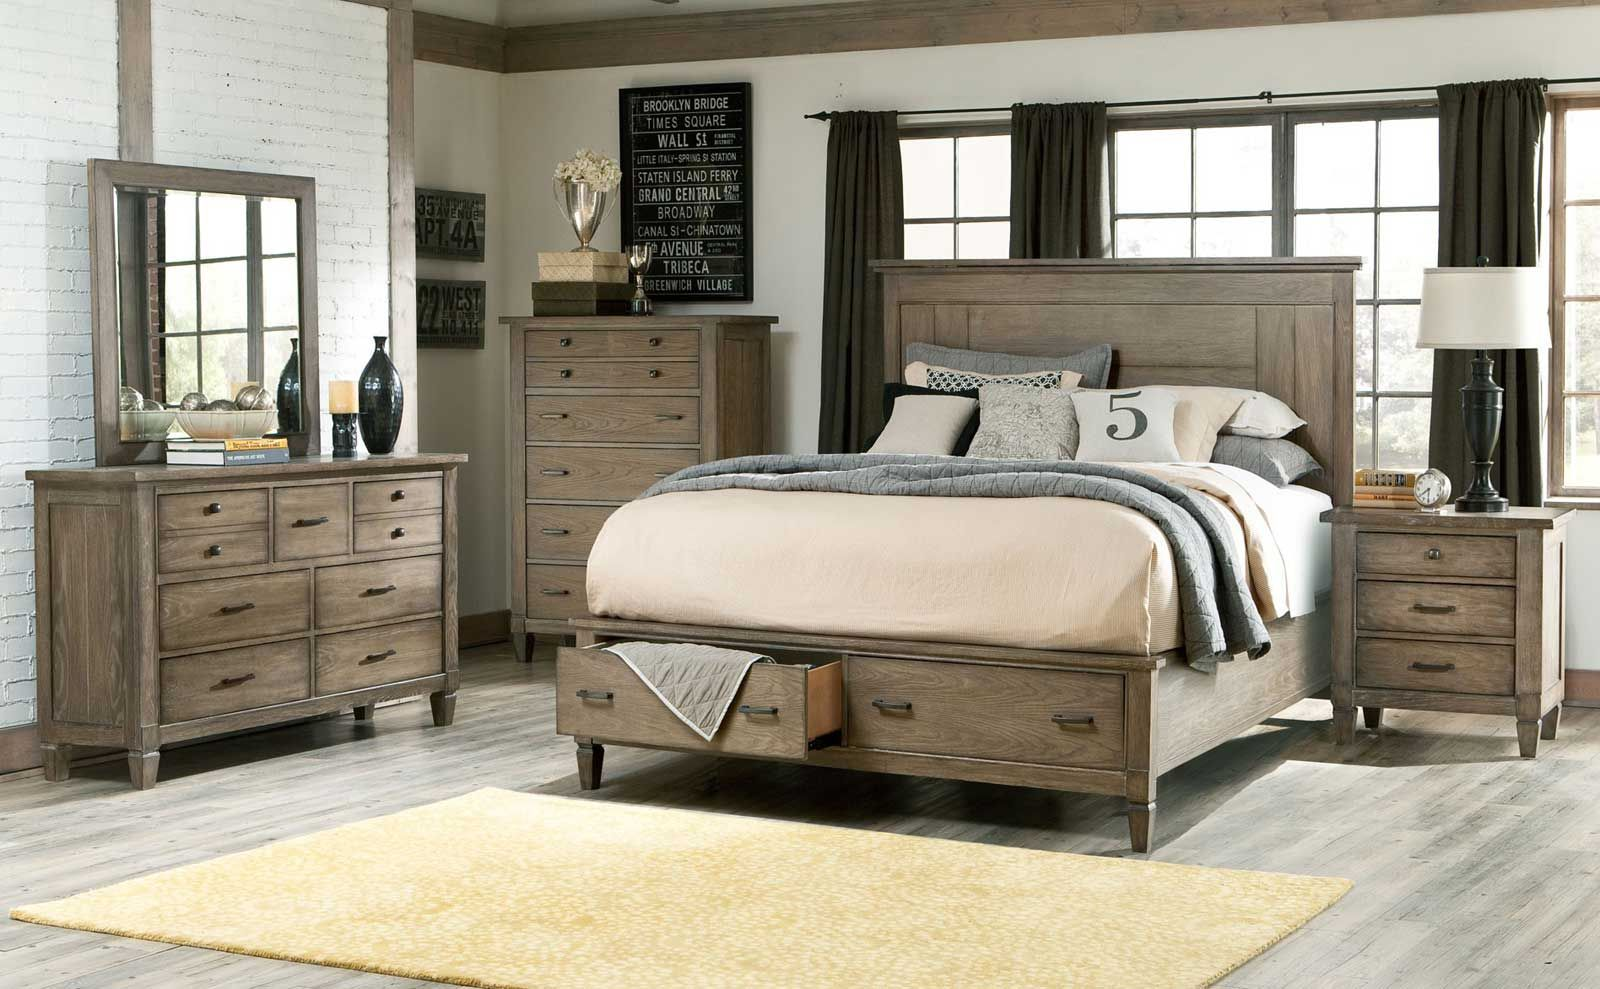 King Bedroom Sets Modern Image Result For Wood King Size Bedroom Sets Farm House Master